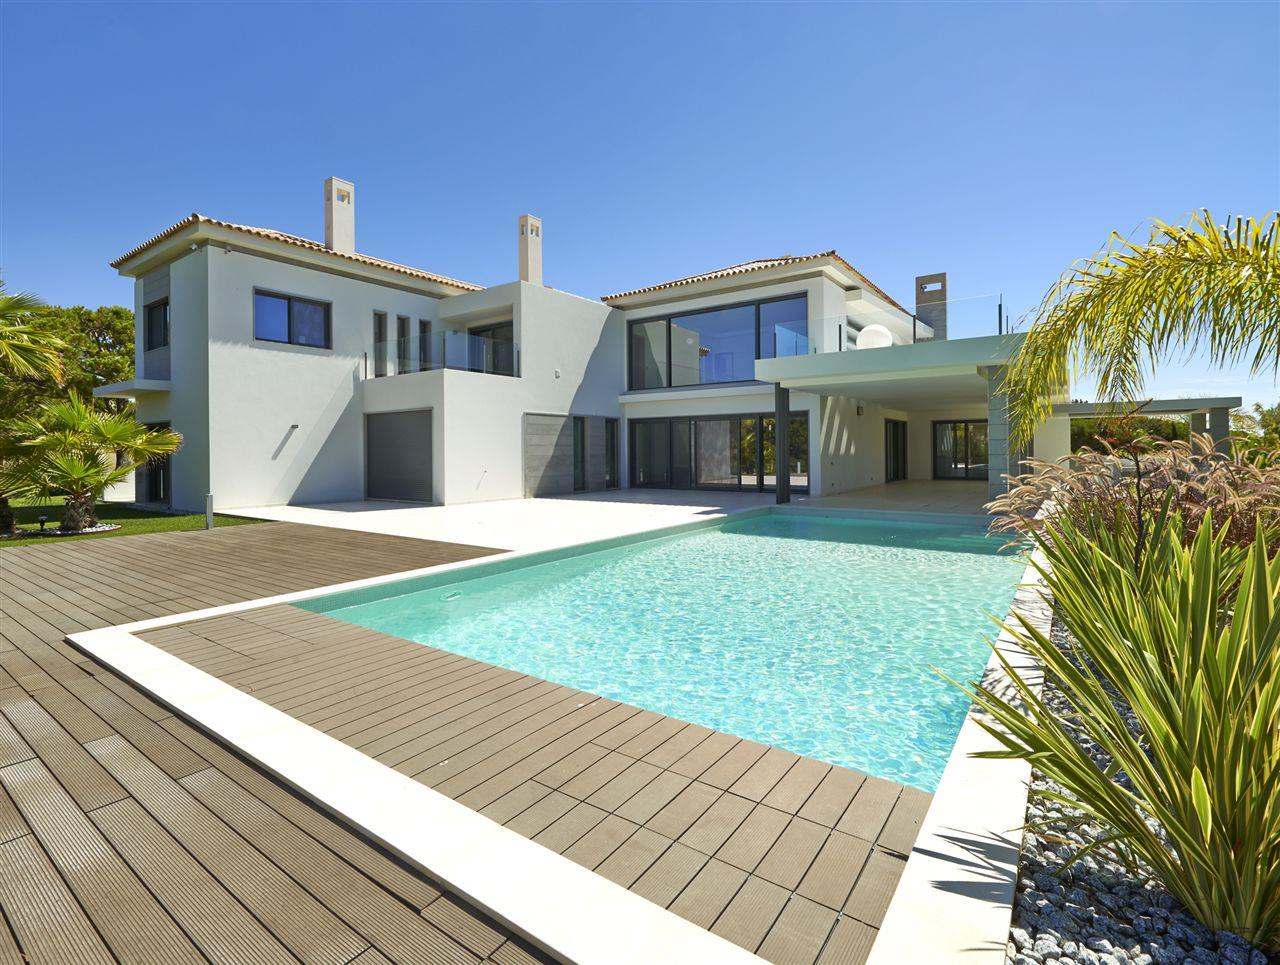 Casa Unifamiliar por un Venta en House, 5 bedrooms, for Sale Loule, Algarve, 8135-024 Portugal